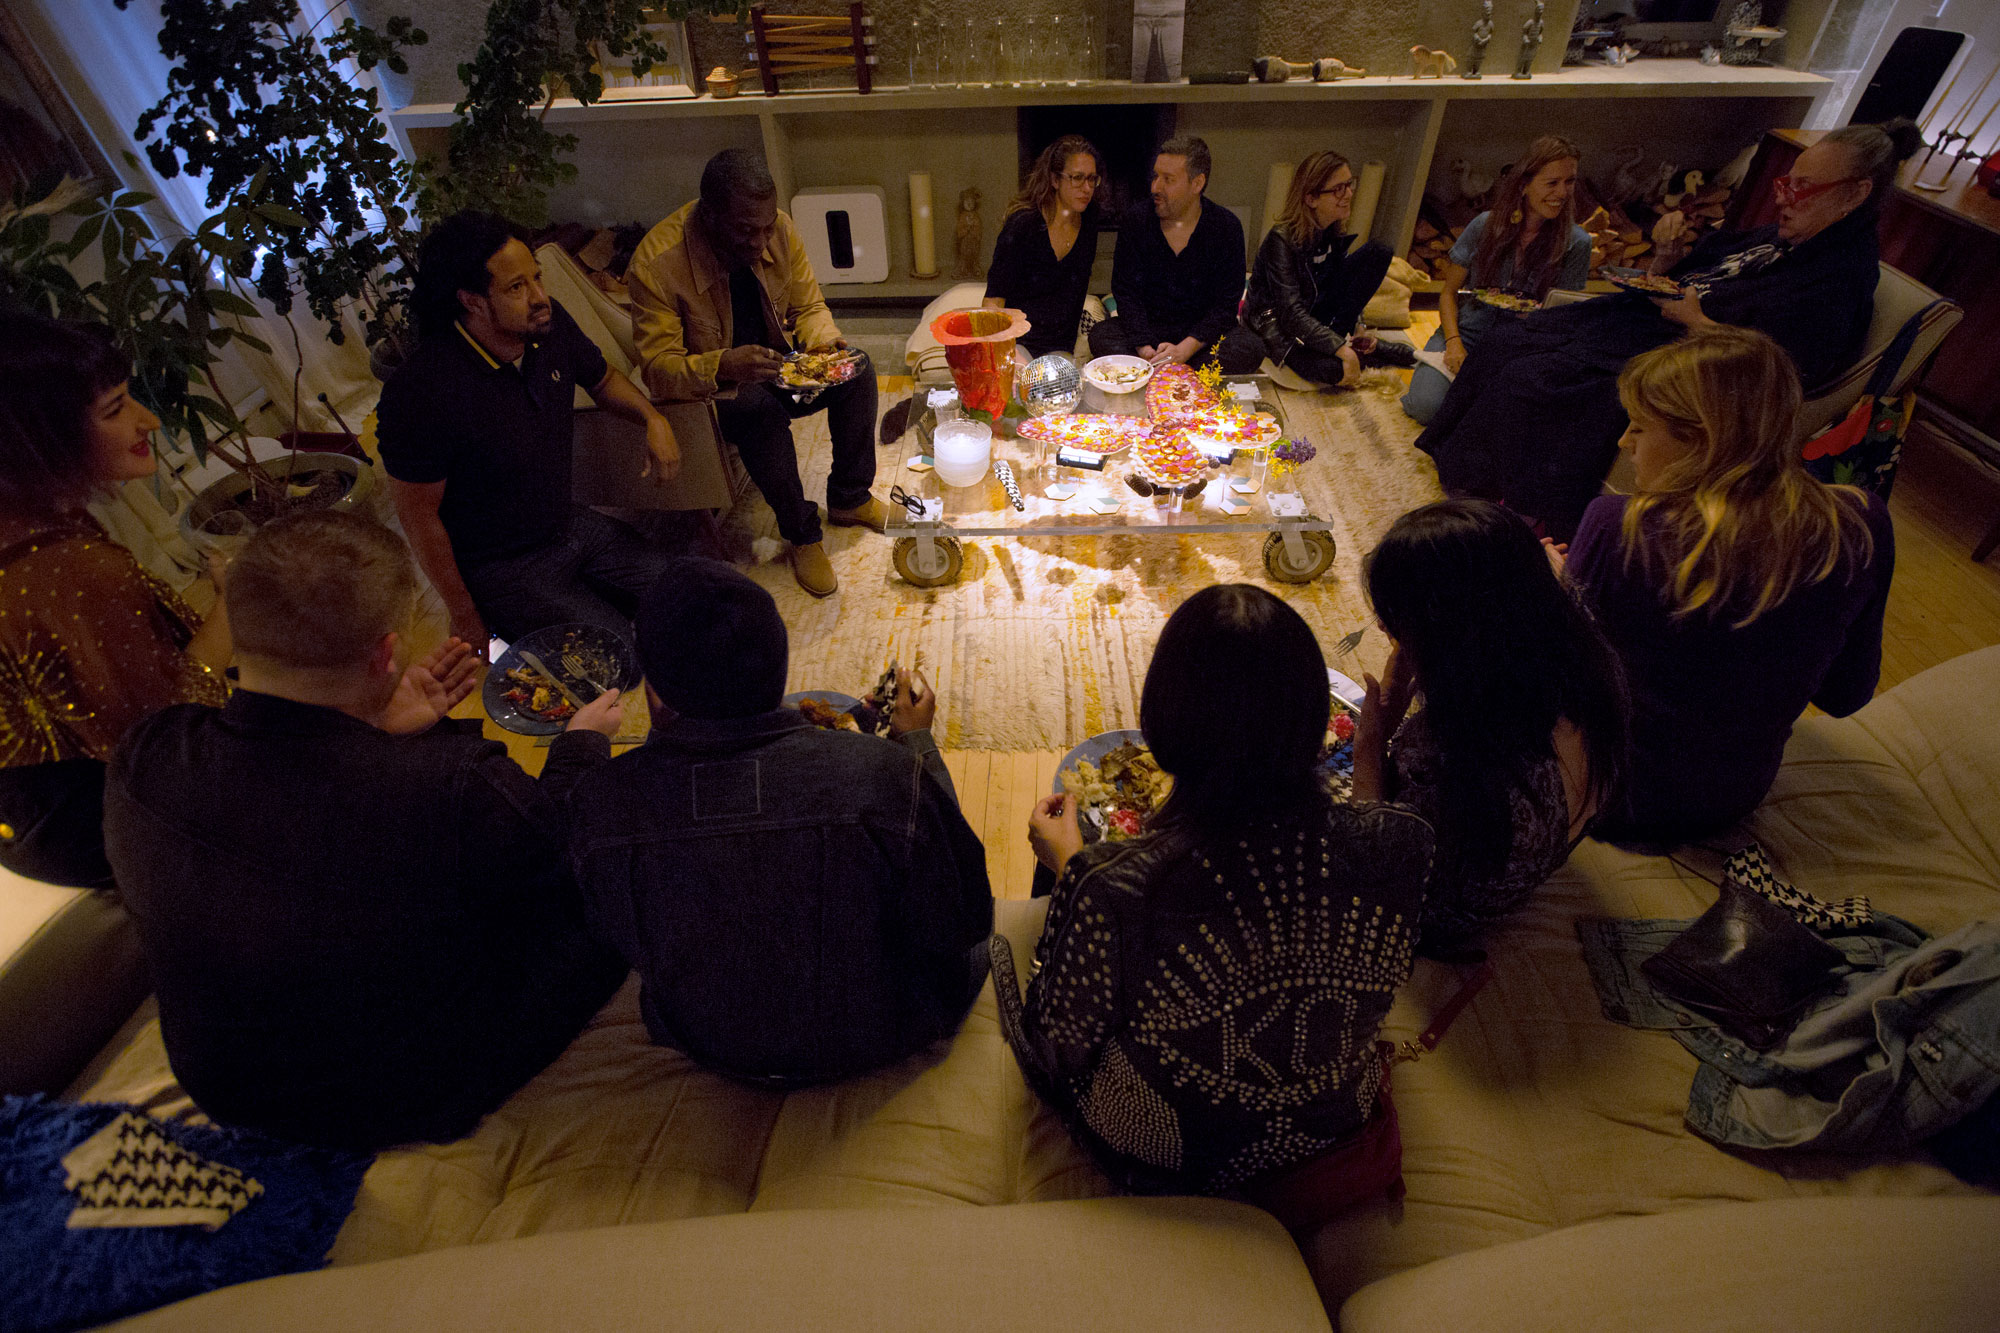 sonos-mind-of-a-chef-potluck-music-special-guests-4